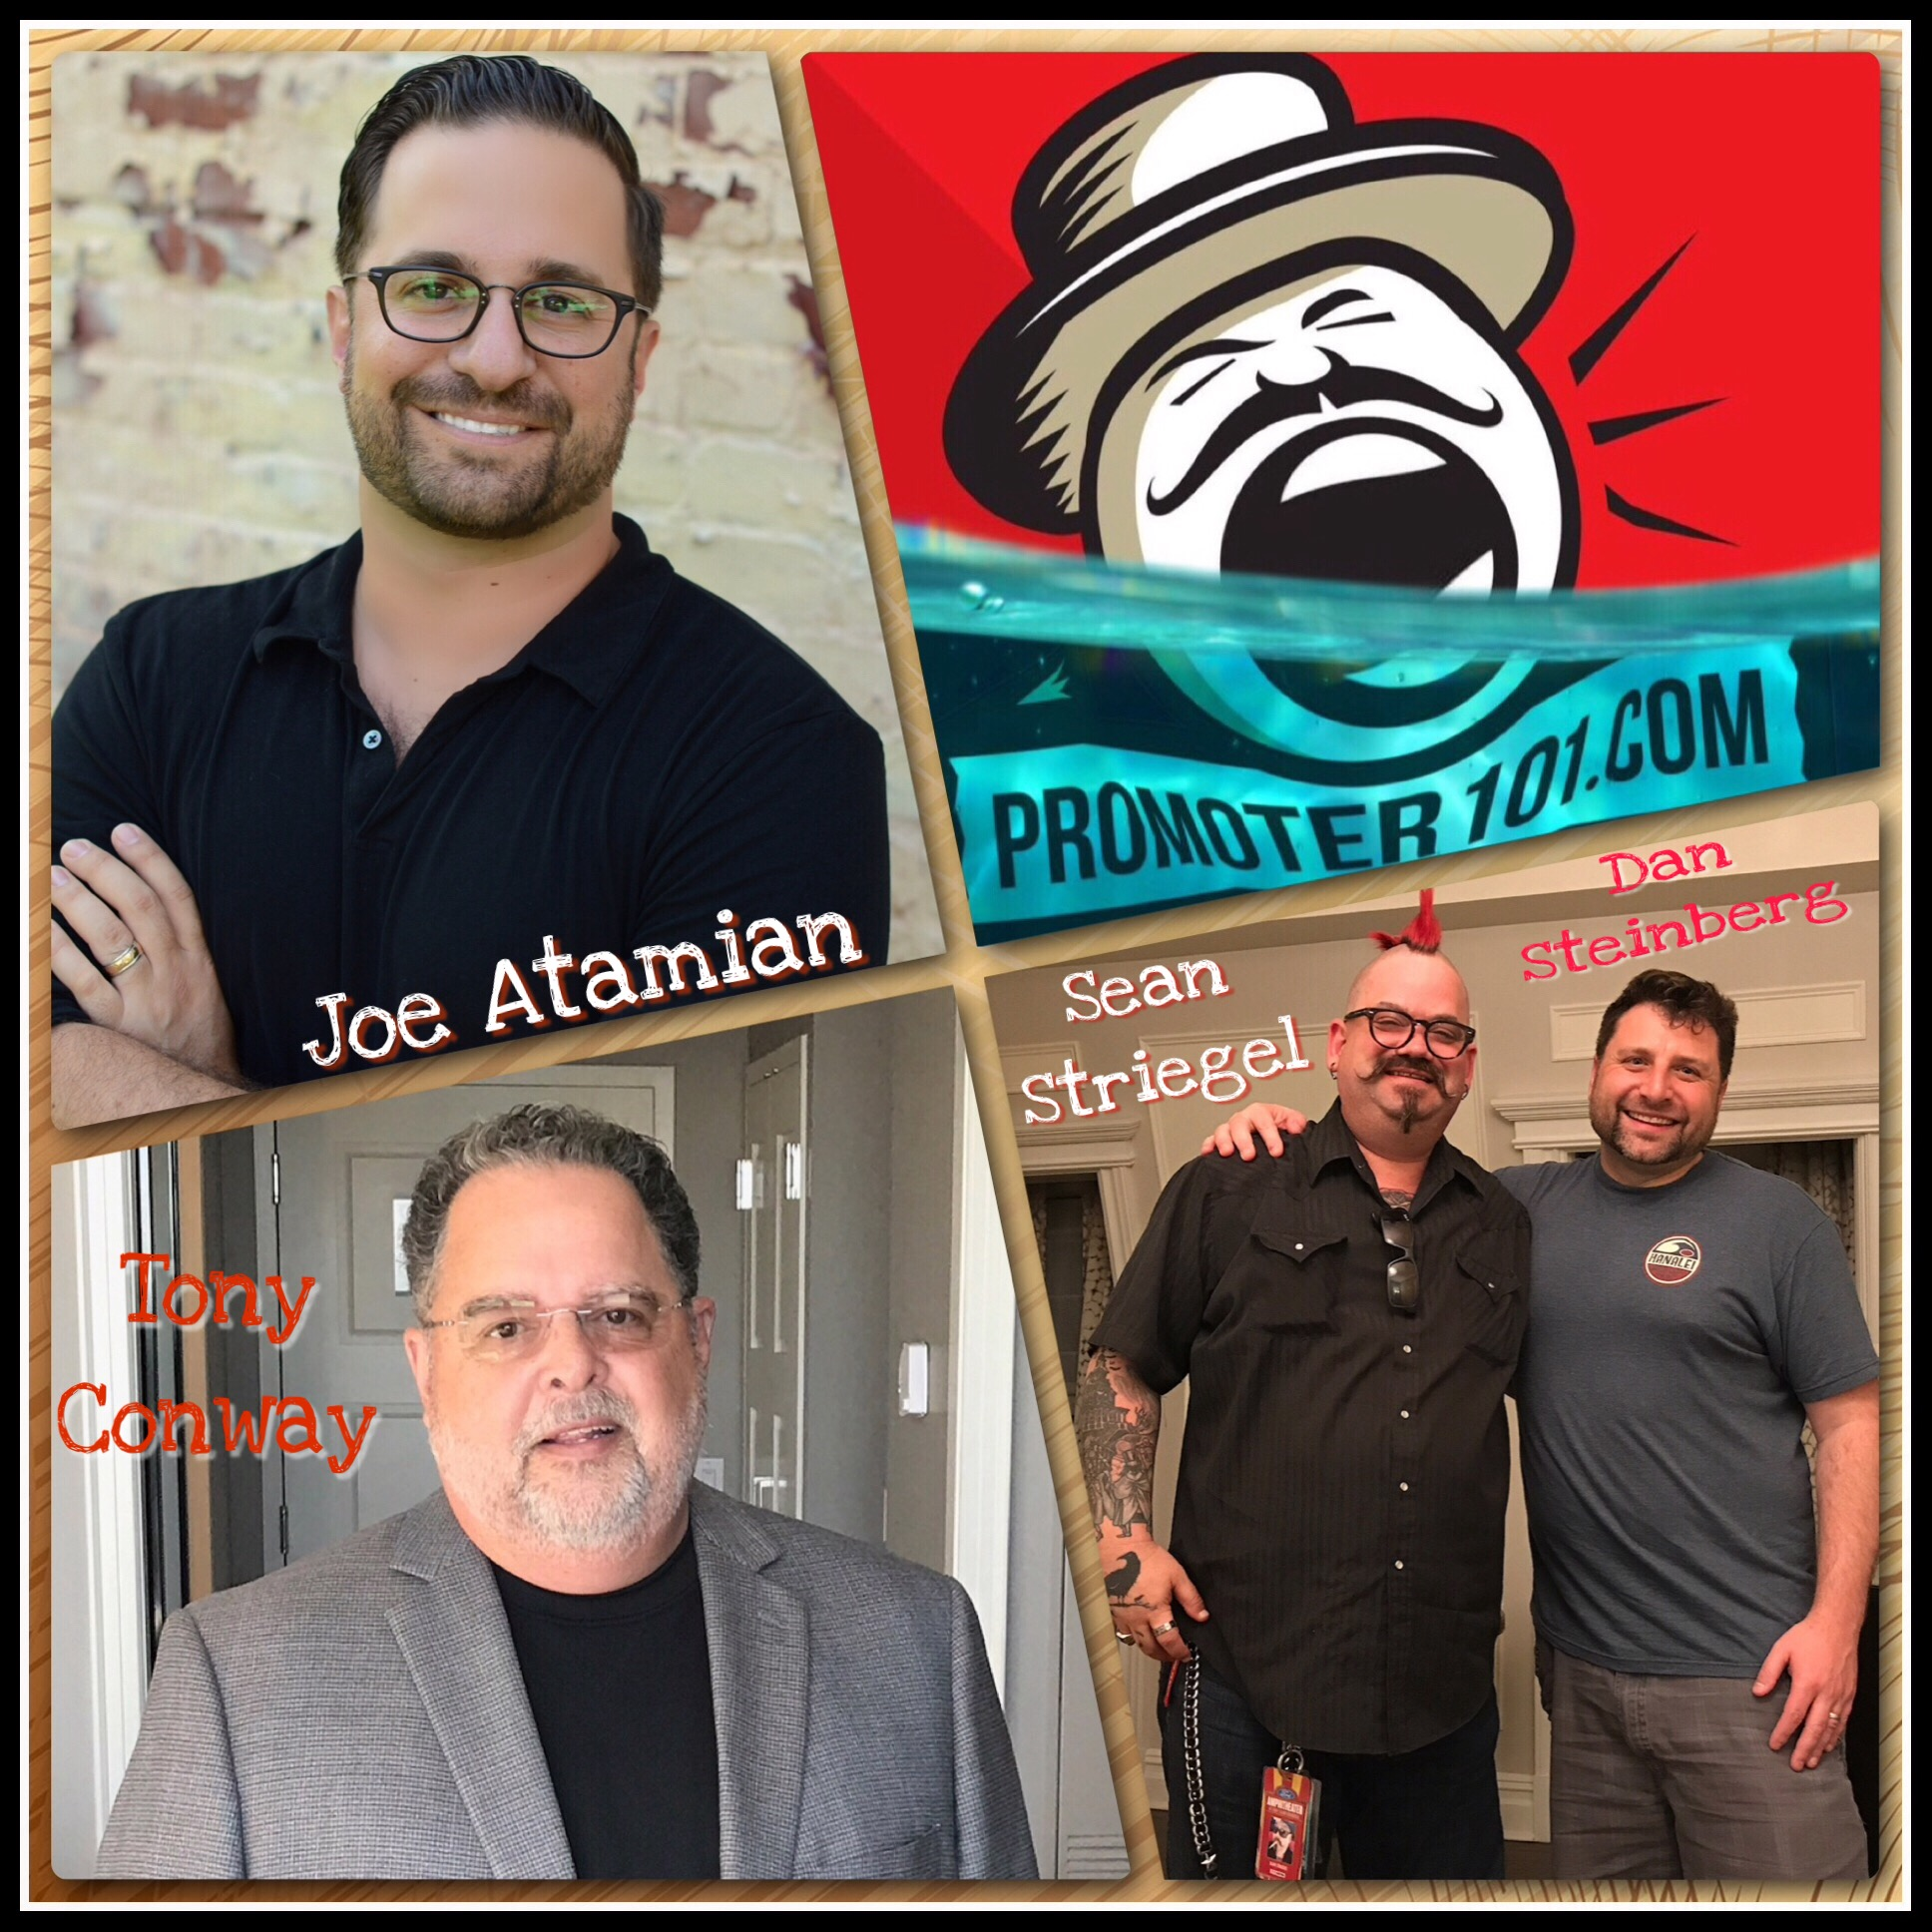 EPISODE #57: Paradigm's Joe Atamian, Live Nation's Sean Striegel, A Story from Tony Conway